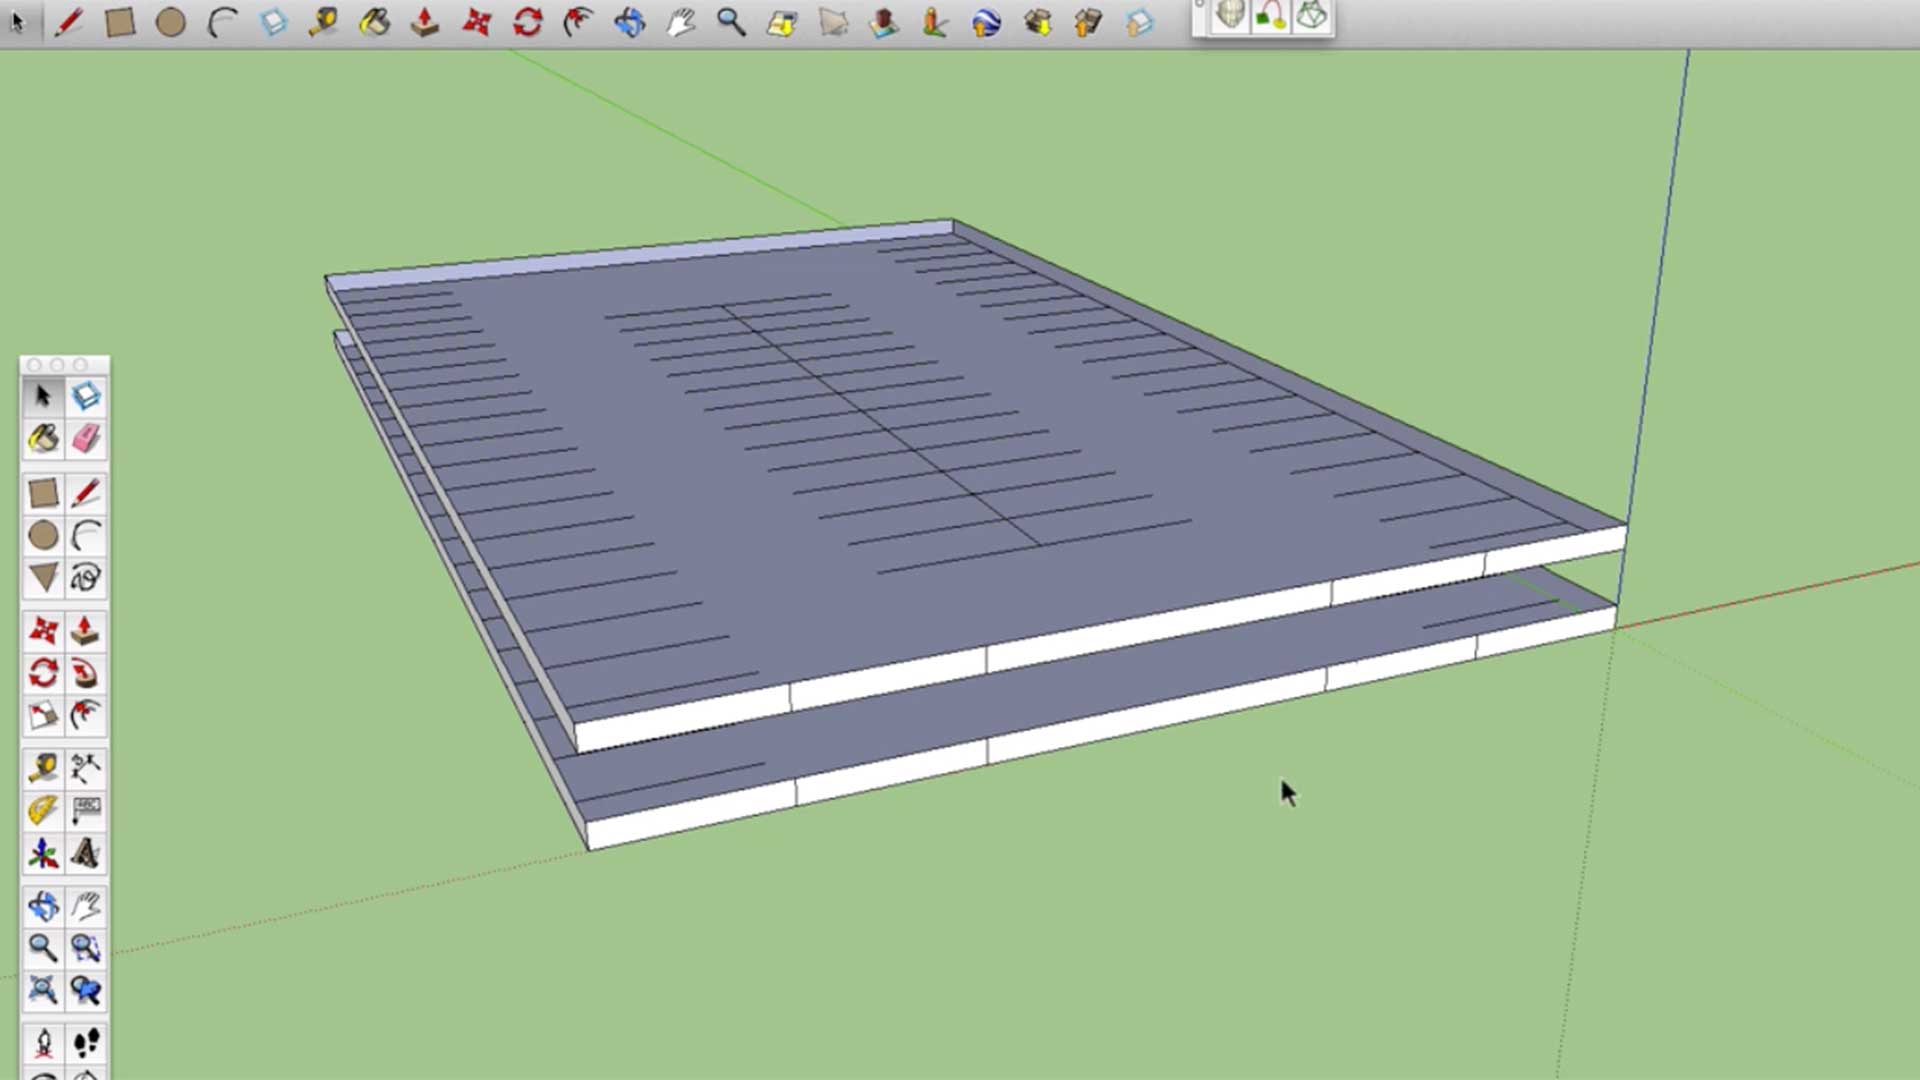 parking structure created in sketchup